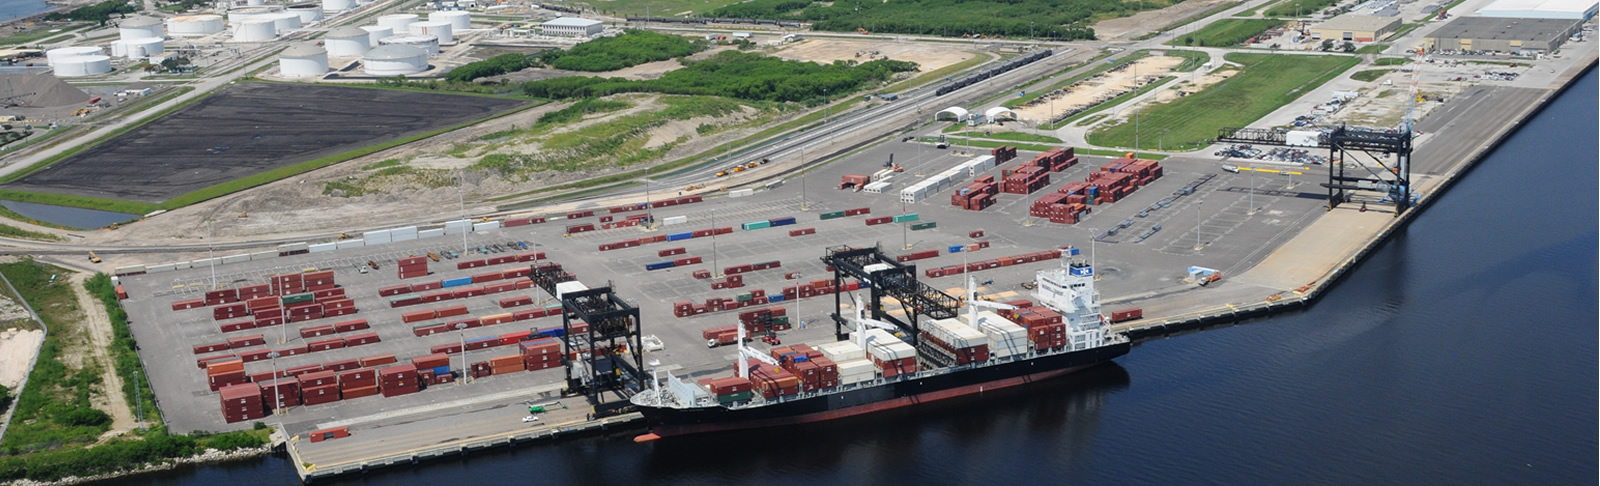 Tampa Port Hitech Freight